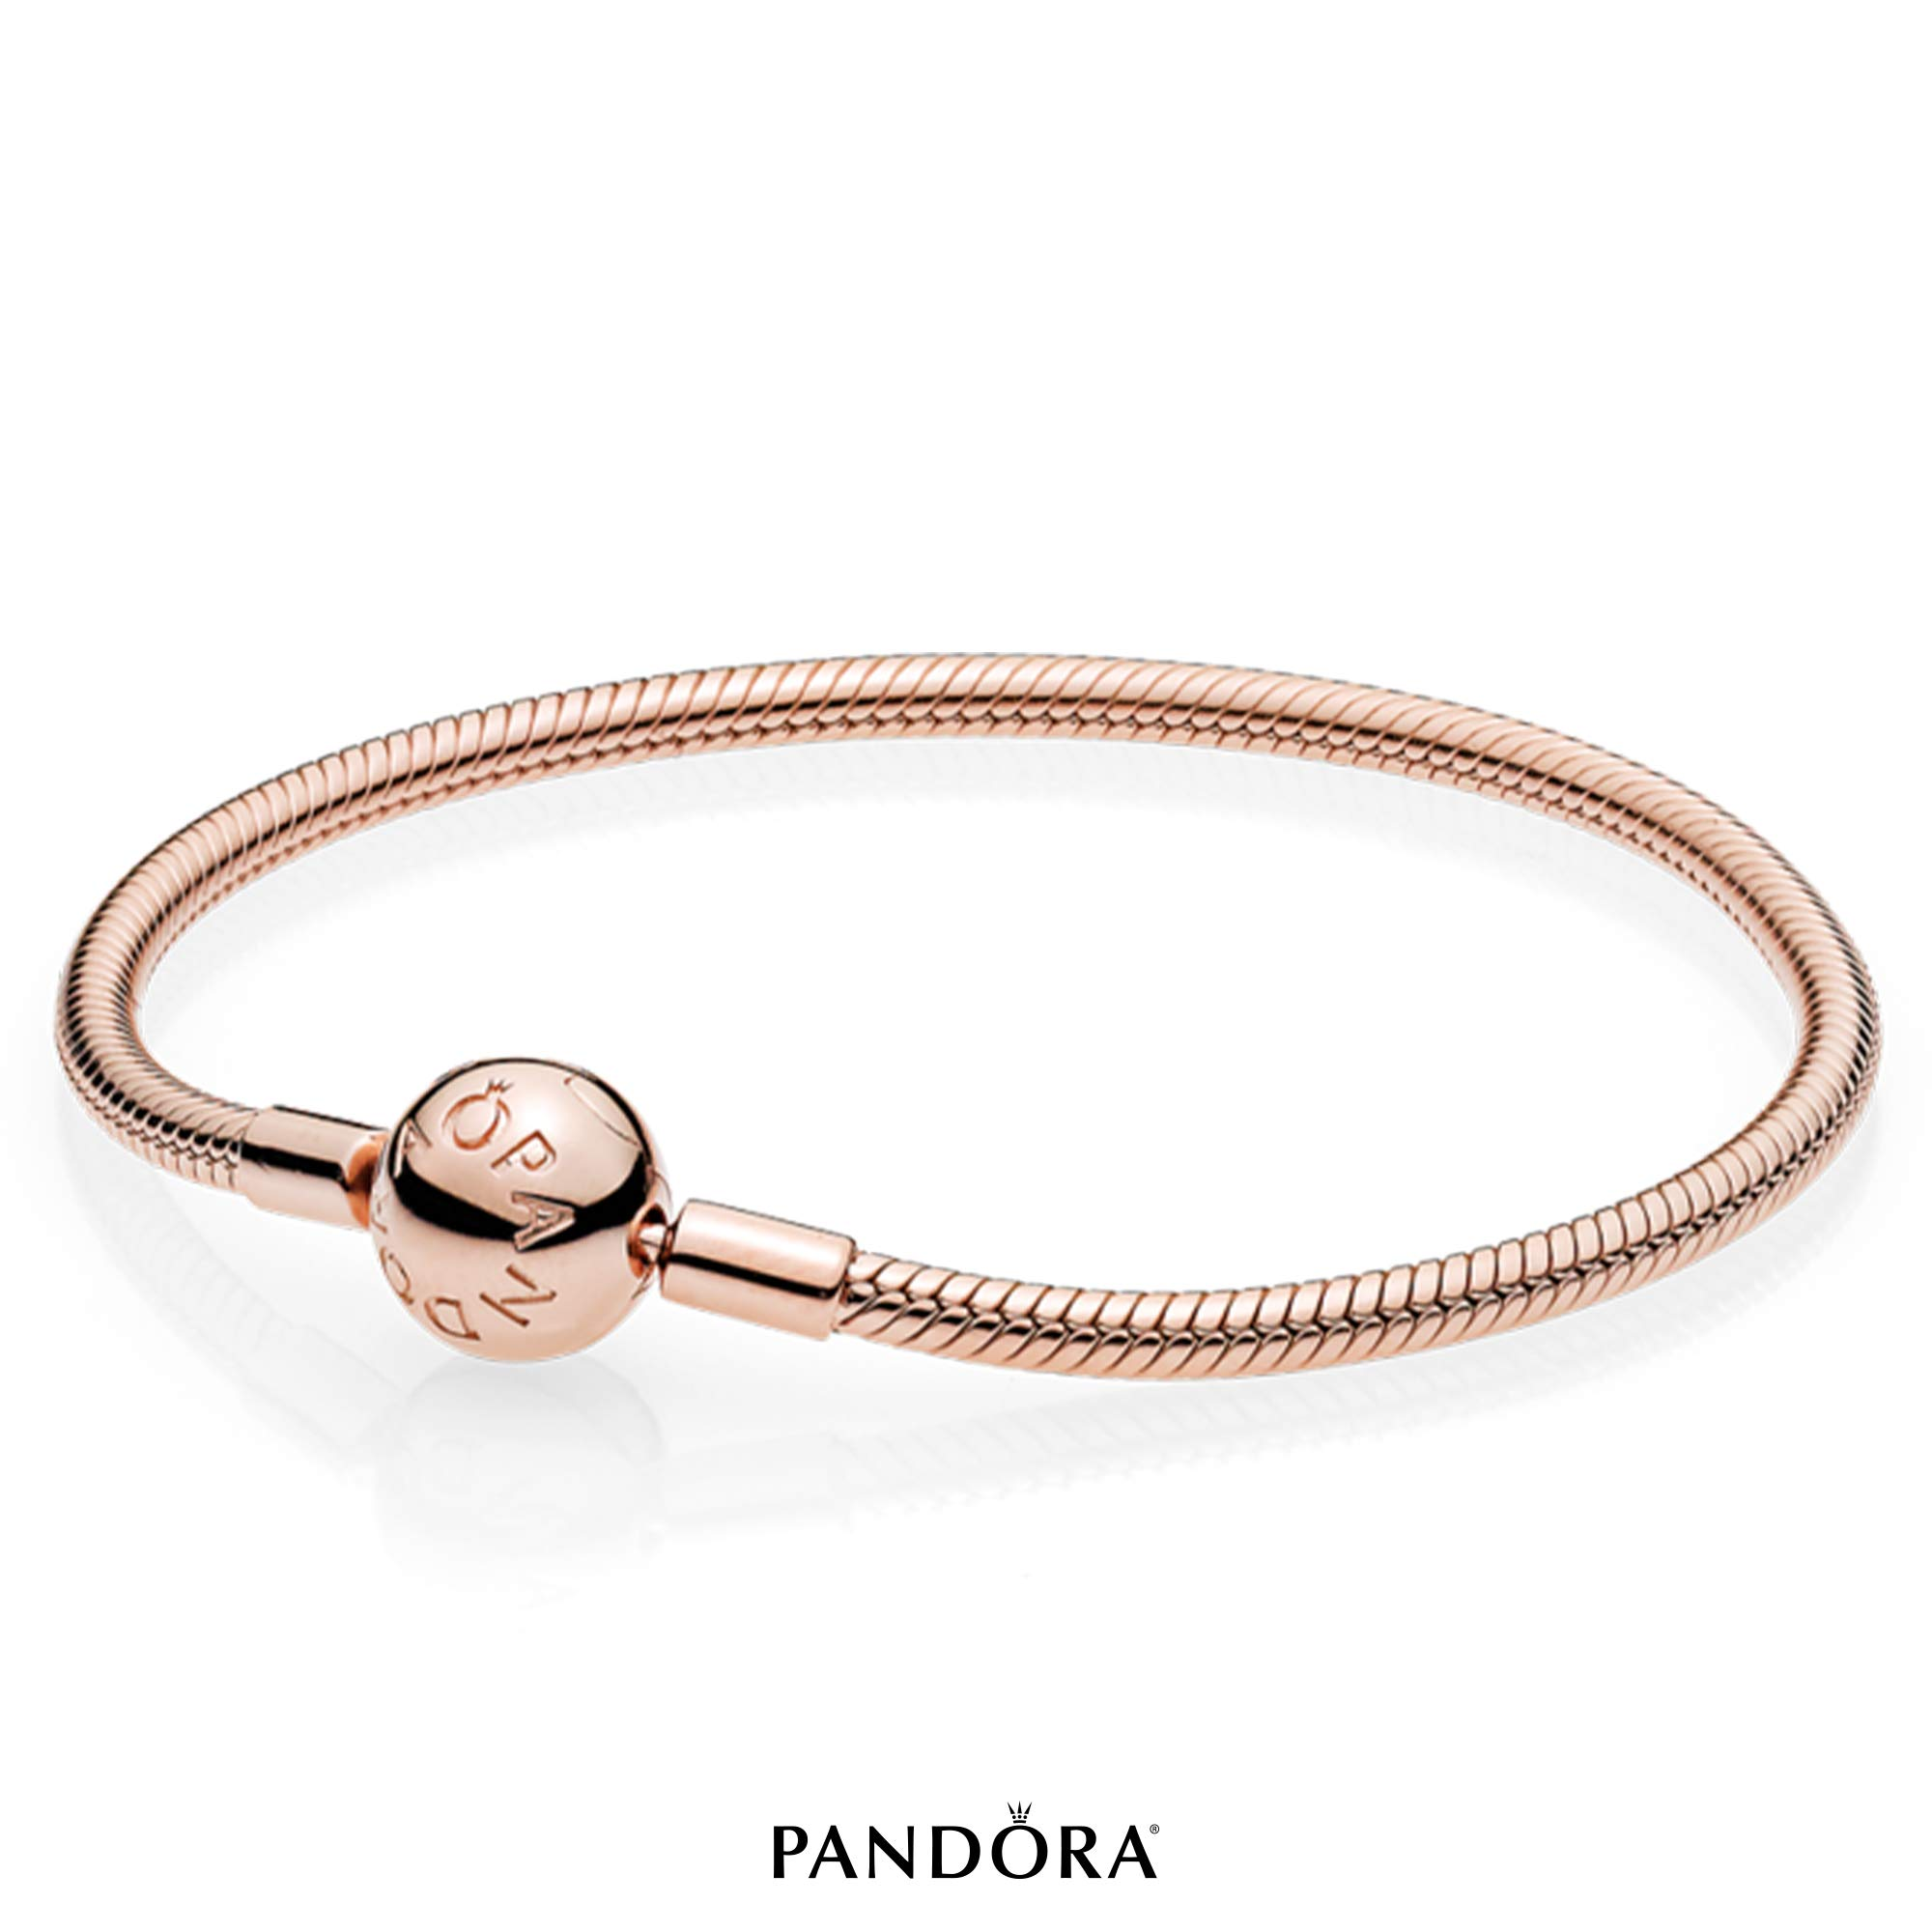 PANDORA Smooth Pandora Rose Clasp Bracelet, 6.7 IN by PANDORA